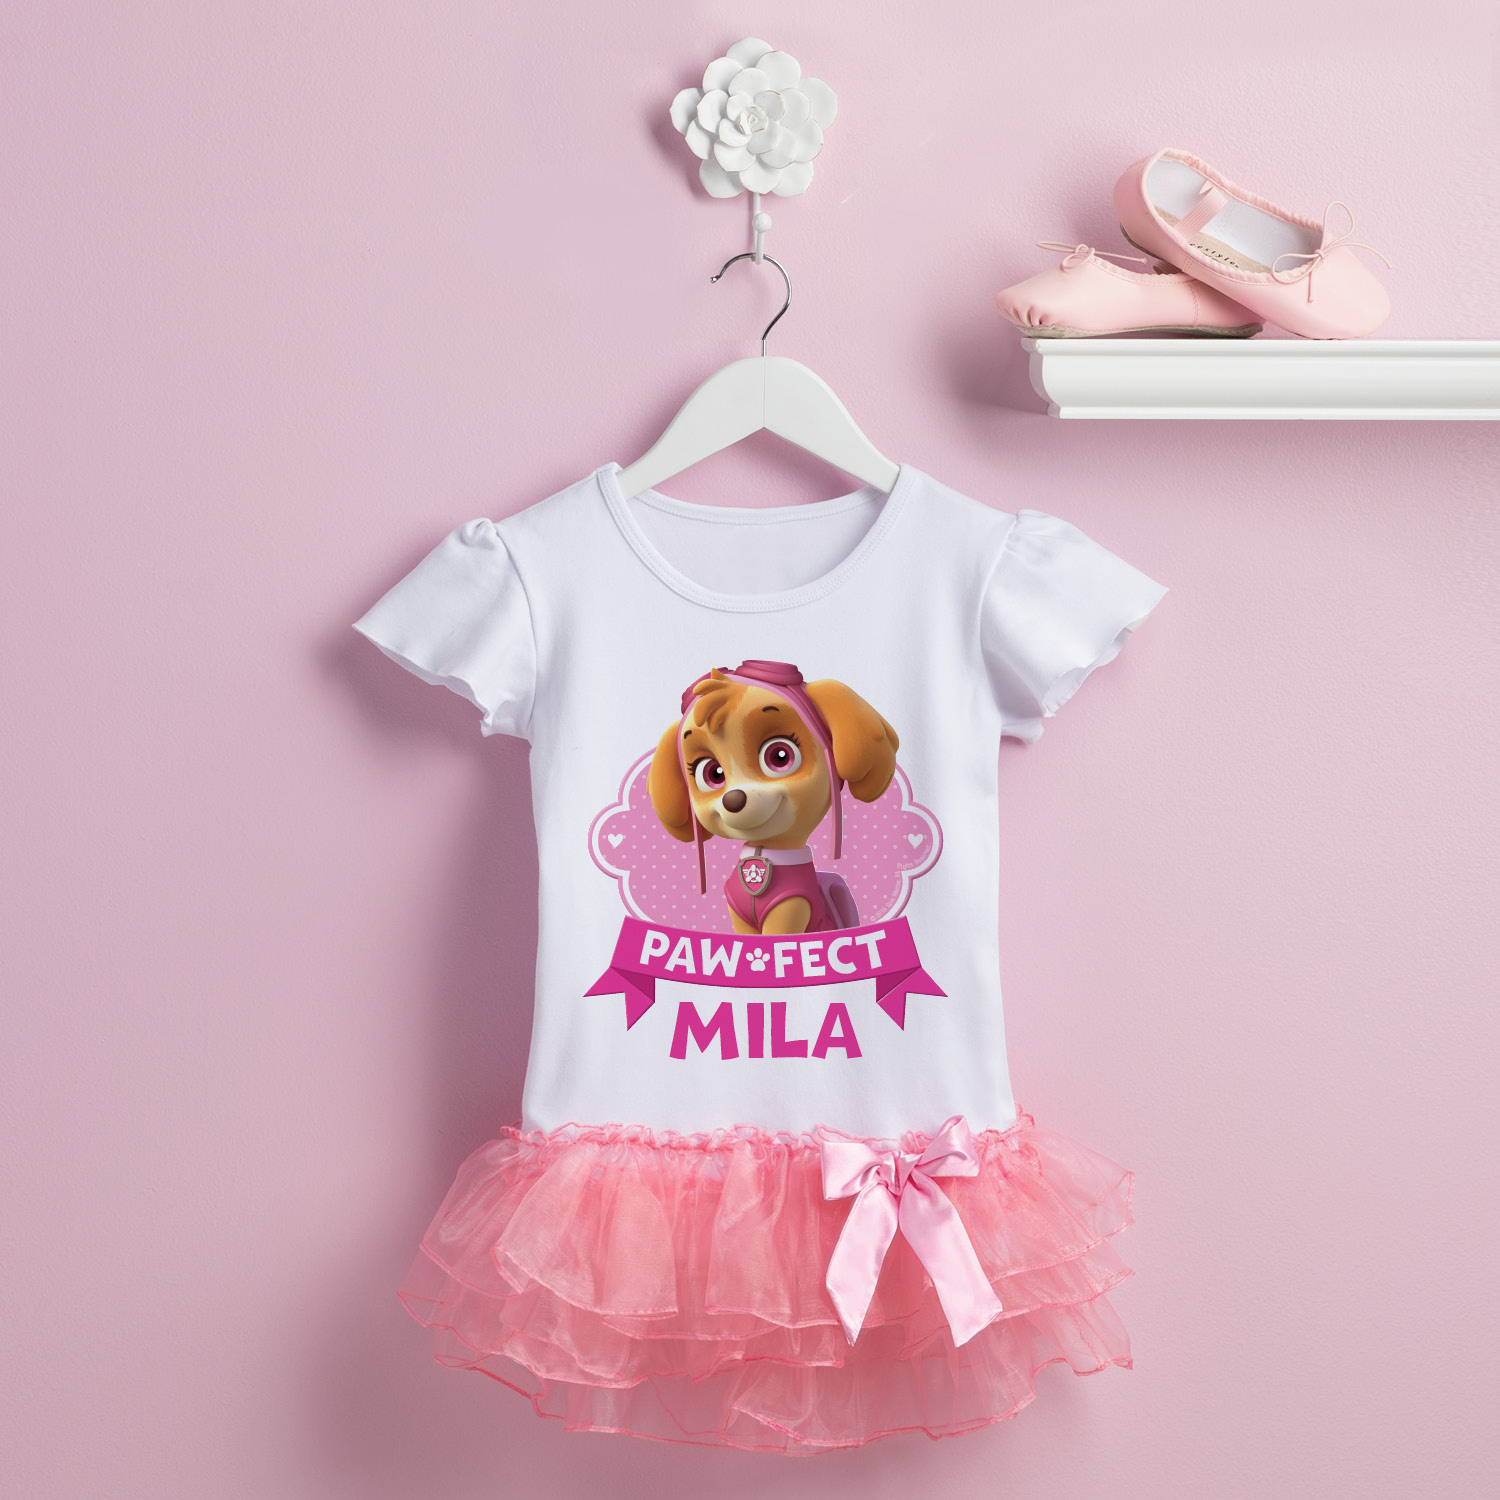 Personalized PAW Patrol Paw-fect Skye Toddler Girls' Tutu T-Shirt